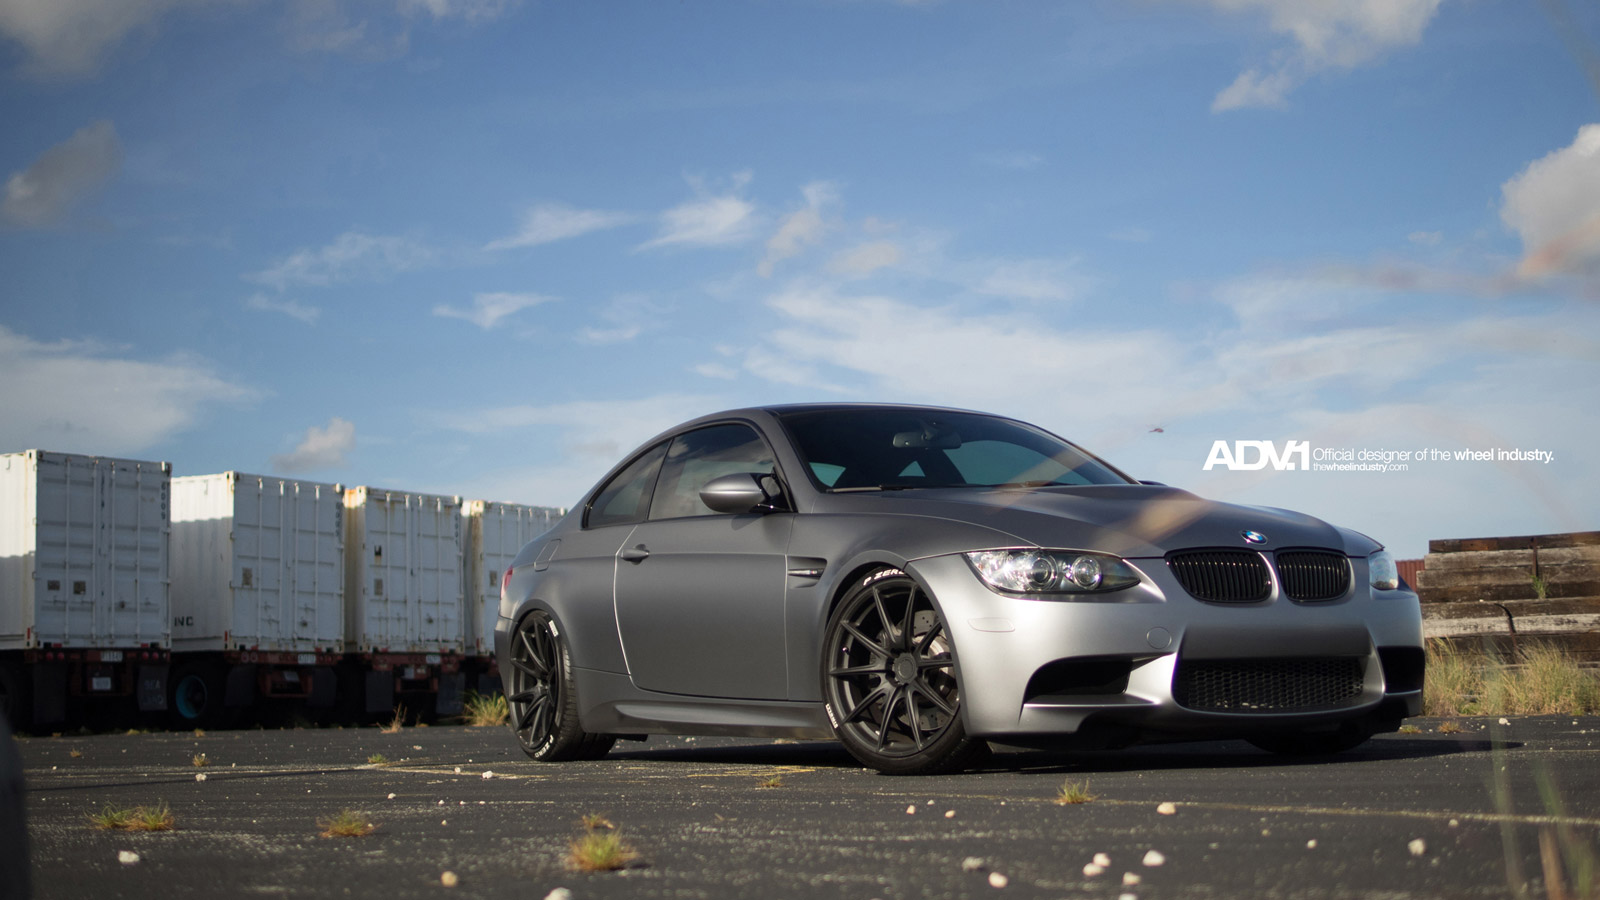 Bmw E92 M3 On Adv10 1 M V1 Superlight Series Wheels